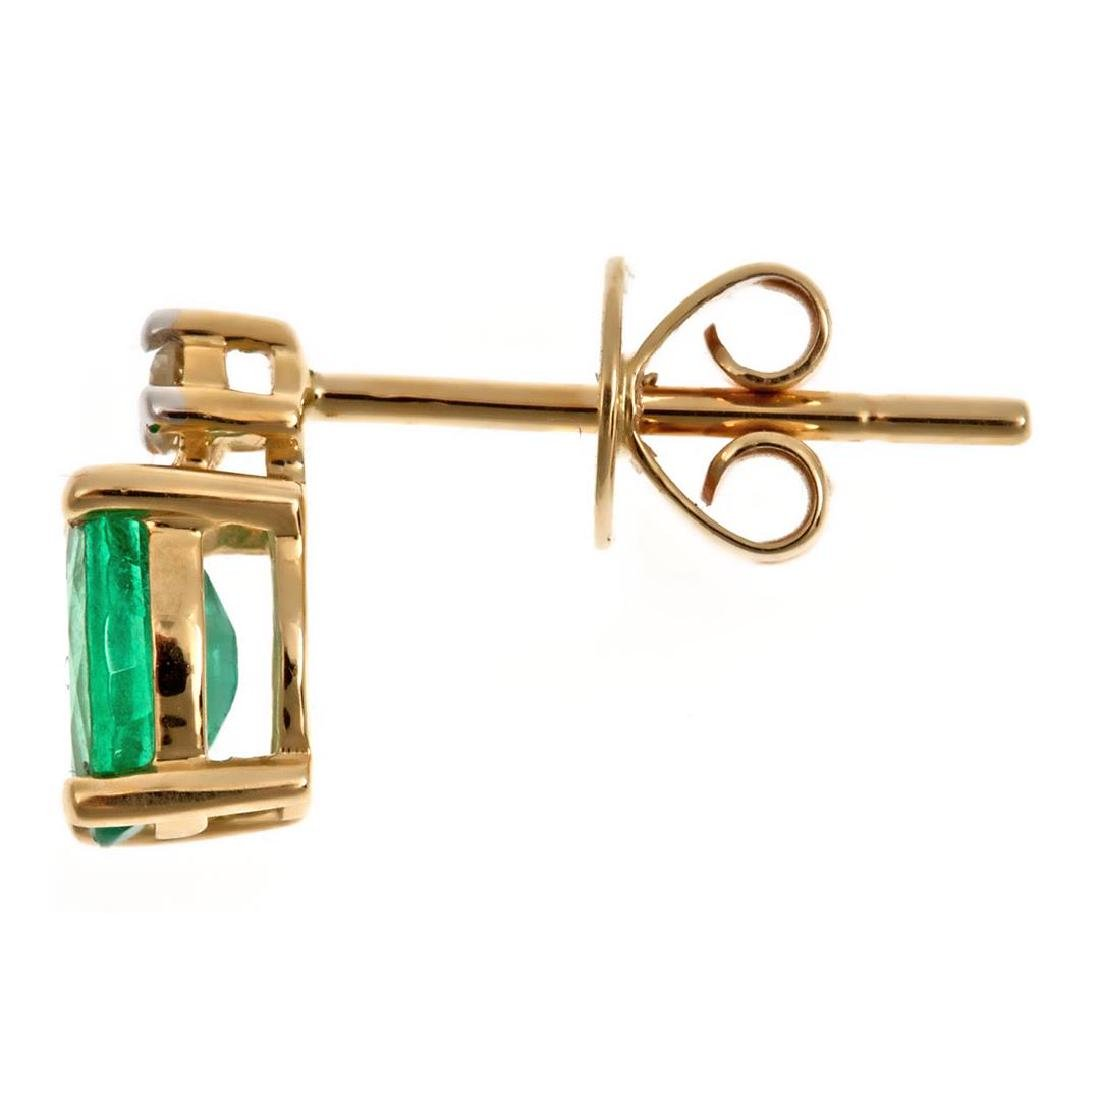 0.83 ctw Emerald and Diamond Earrings - 14KT Yellow and - 2